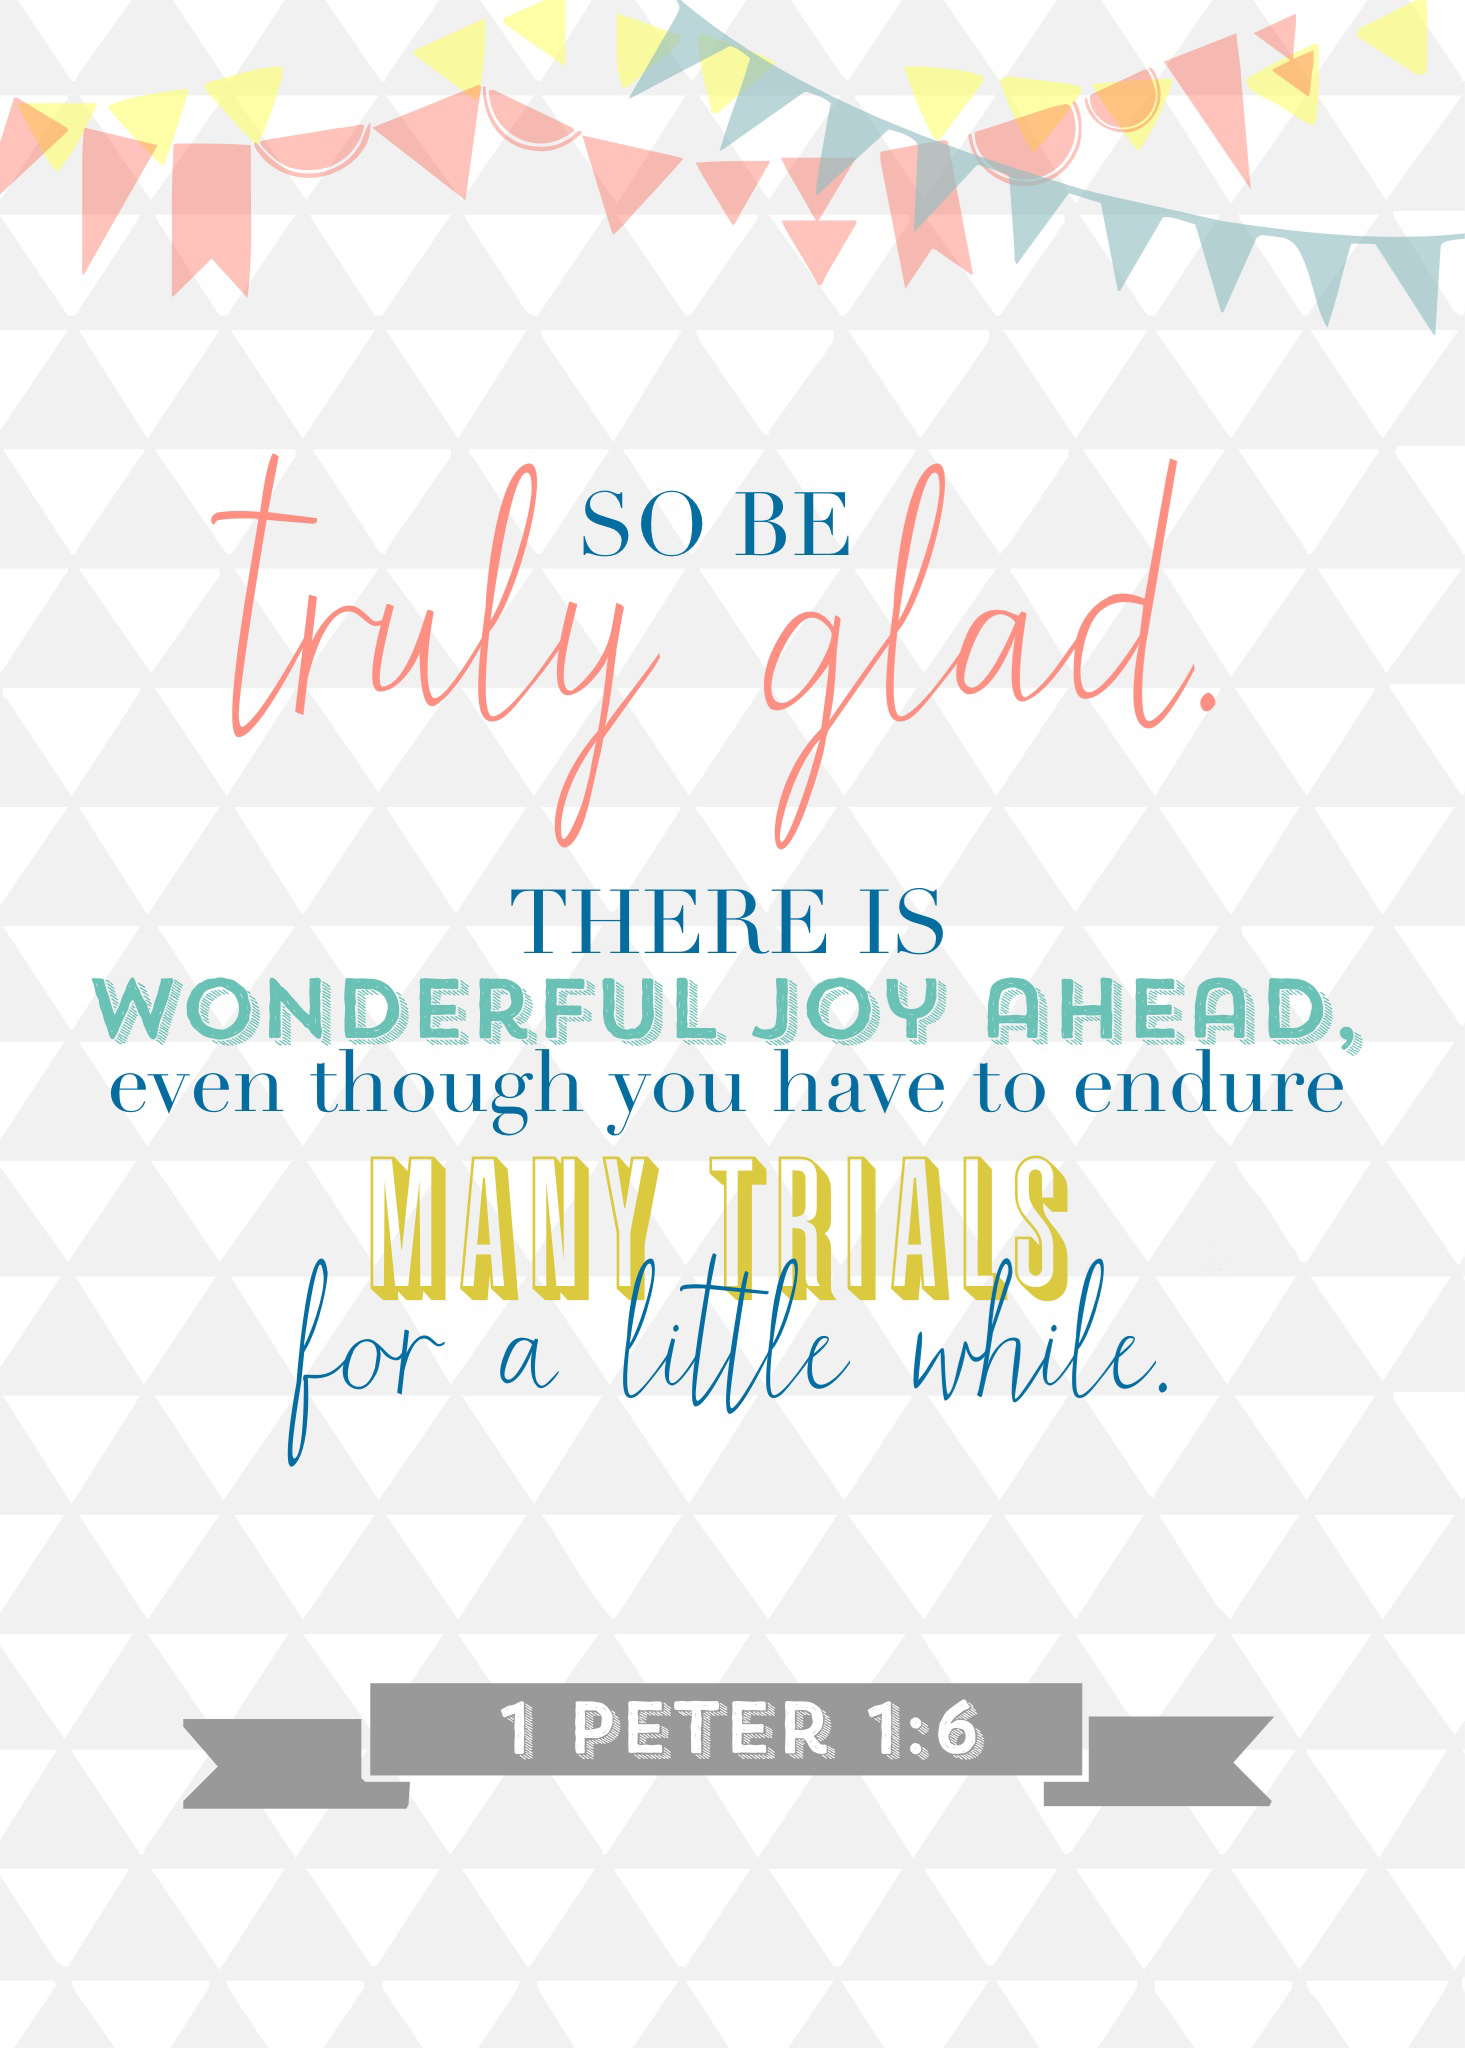 There's wonderful joy ahead ~ 1 Peter 1:6